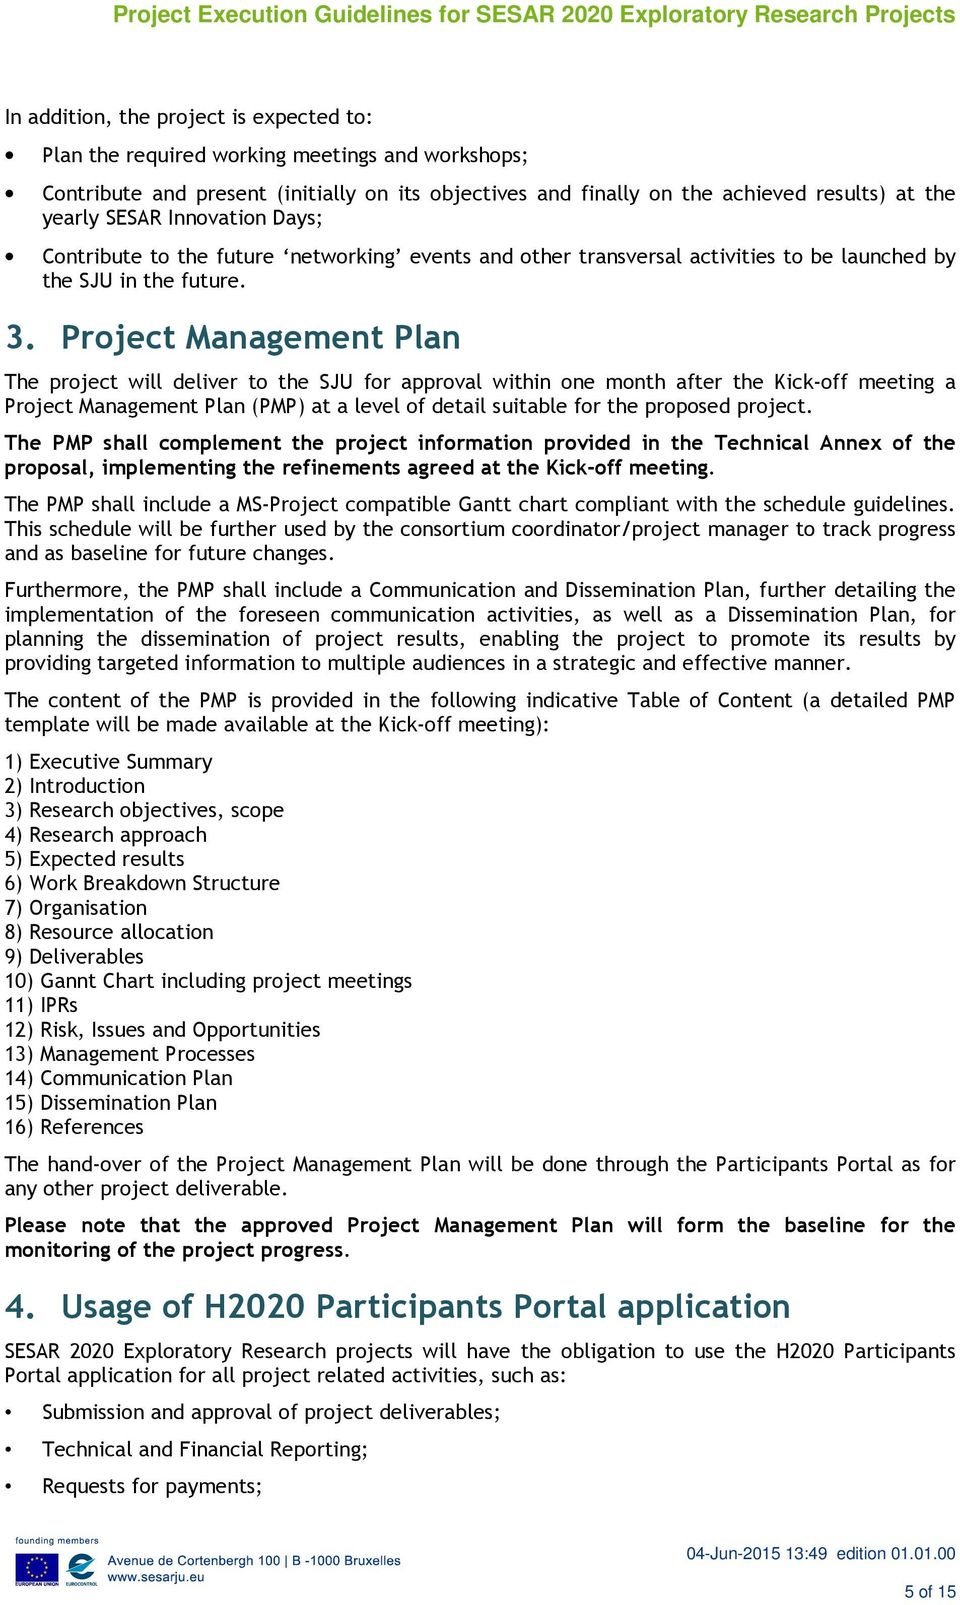 Project Management Plan The project will deliver to the SJU for approval within one month after the Kick-off meeting a Project Management Plan (PMP) at a level of detail suitable for the proposed